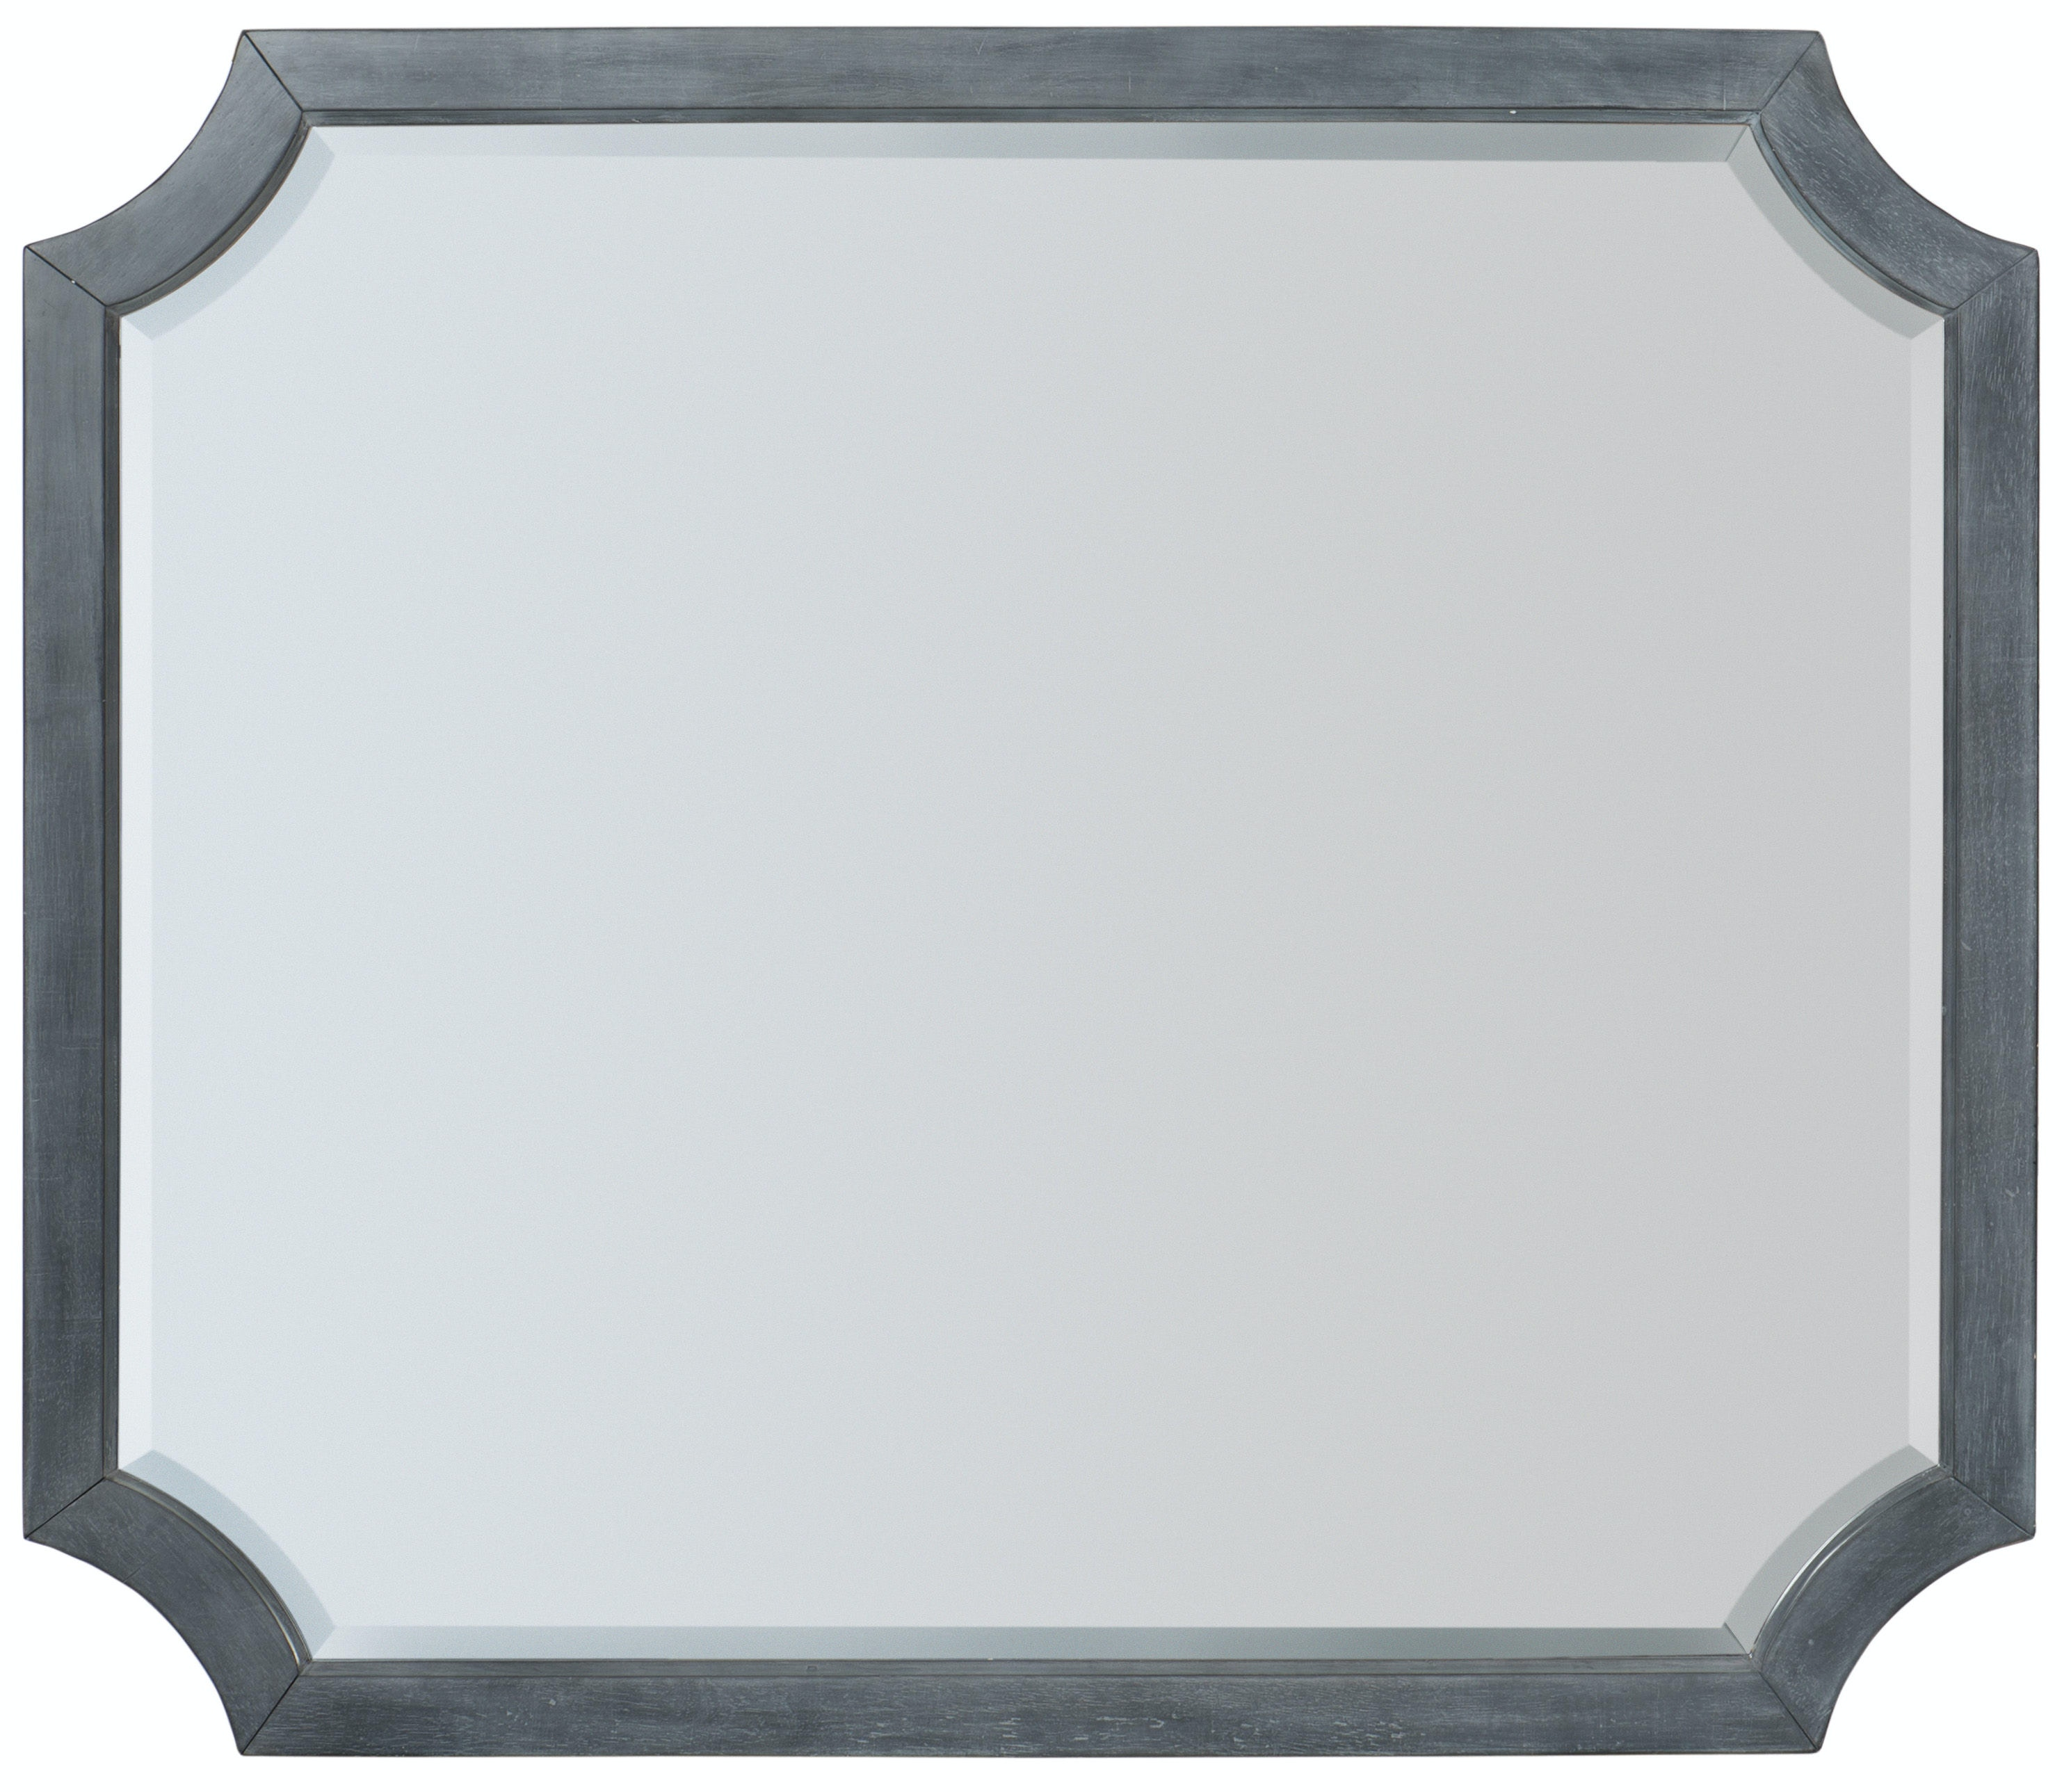 Hooker Furniture Hamilton Mirror 5770 90004 GRY